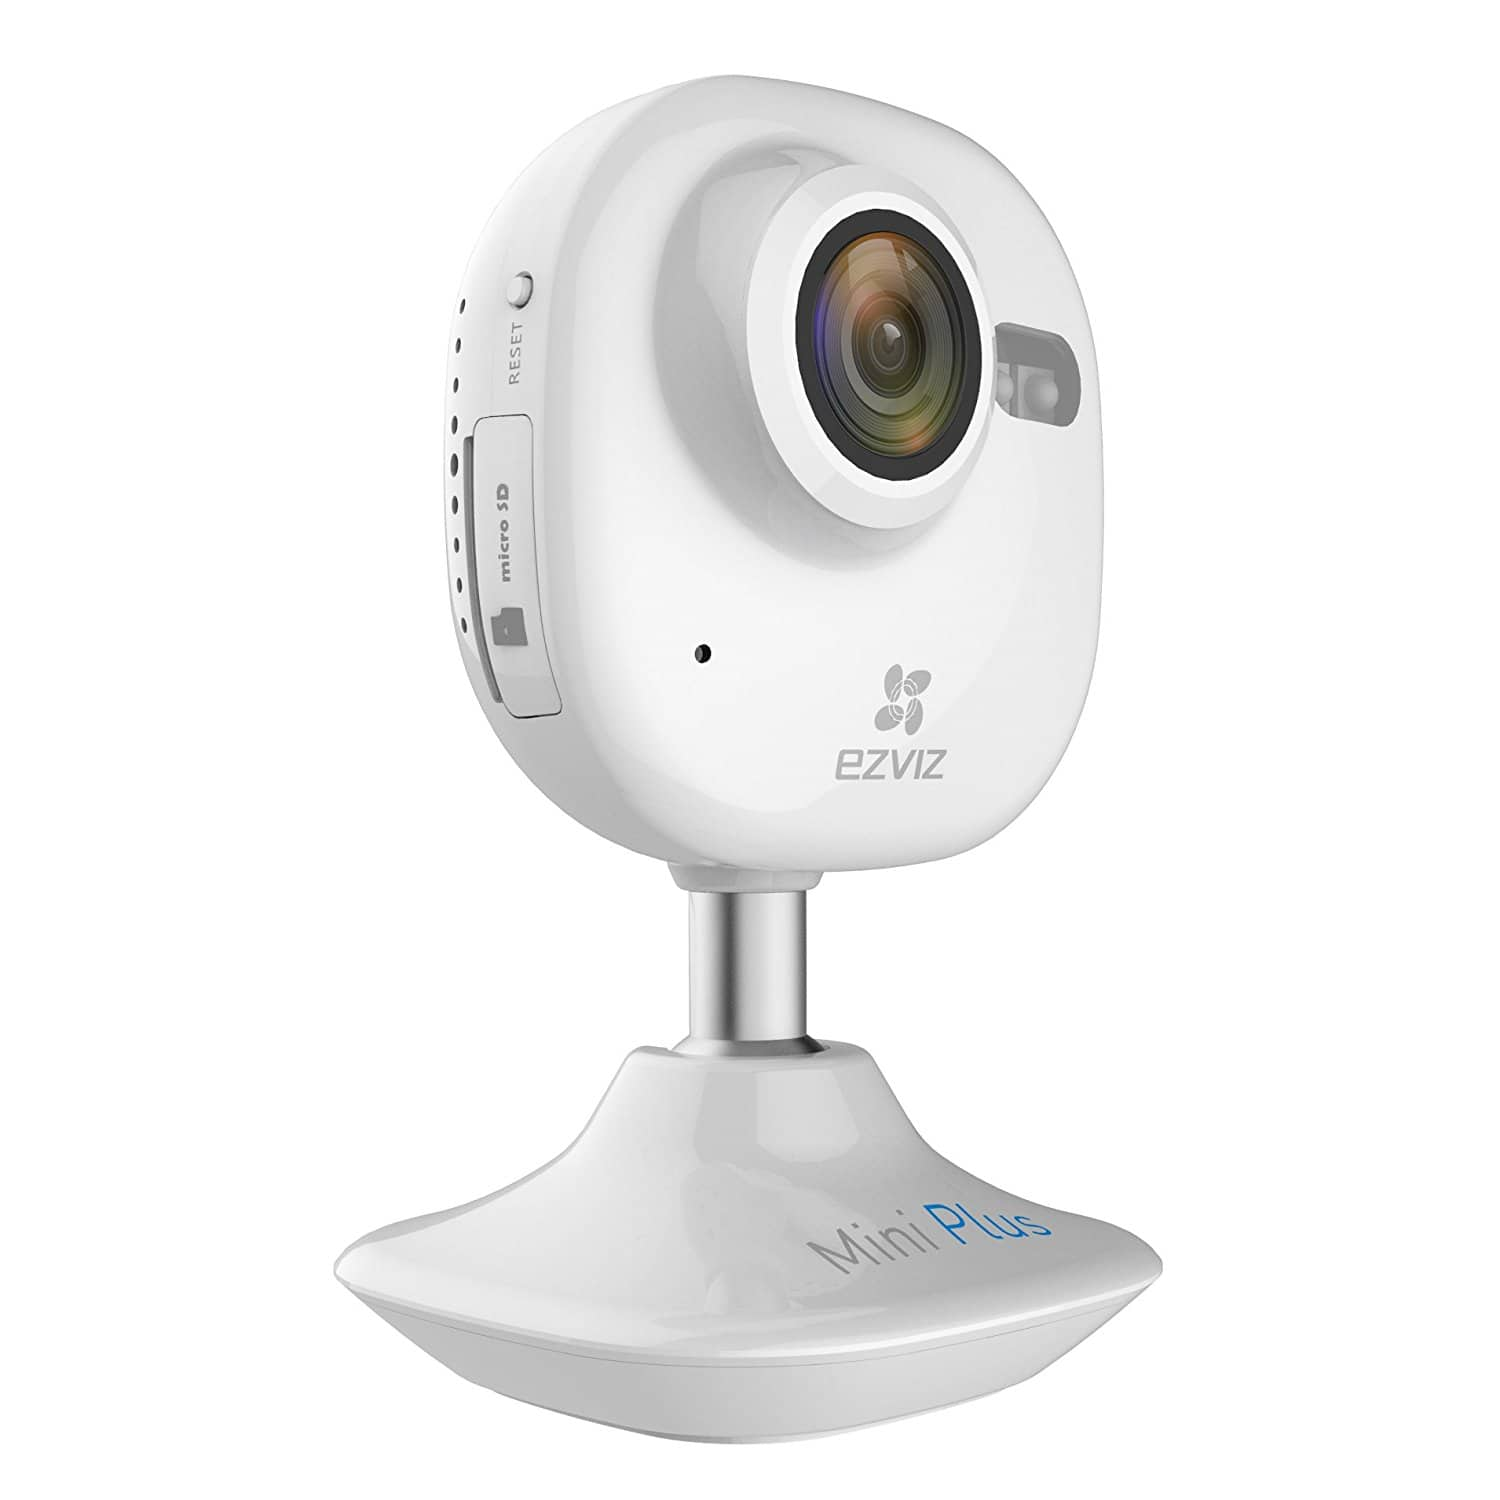 EZVIZ Mini Plus HD 1080p Wi-Fi Camera with 16Gb microSD and $25 giftcard for $67.99 (price dropped) shipped at Newegg